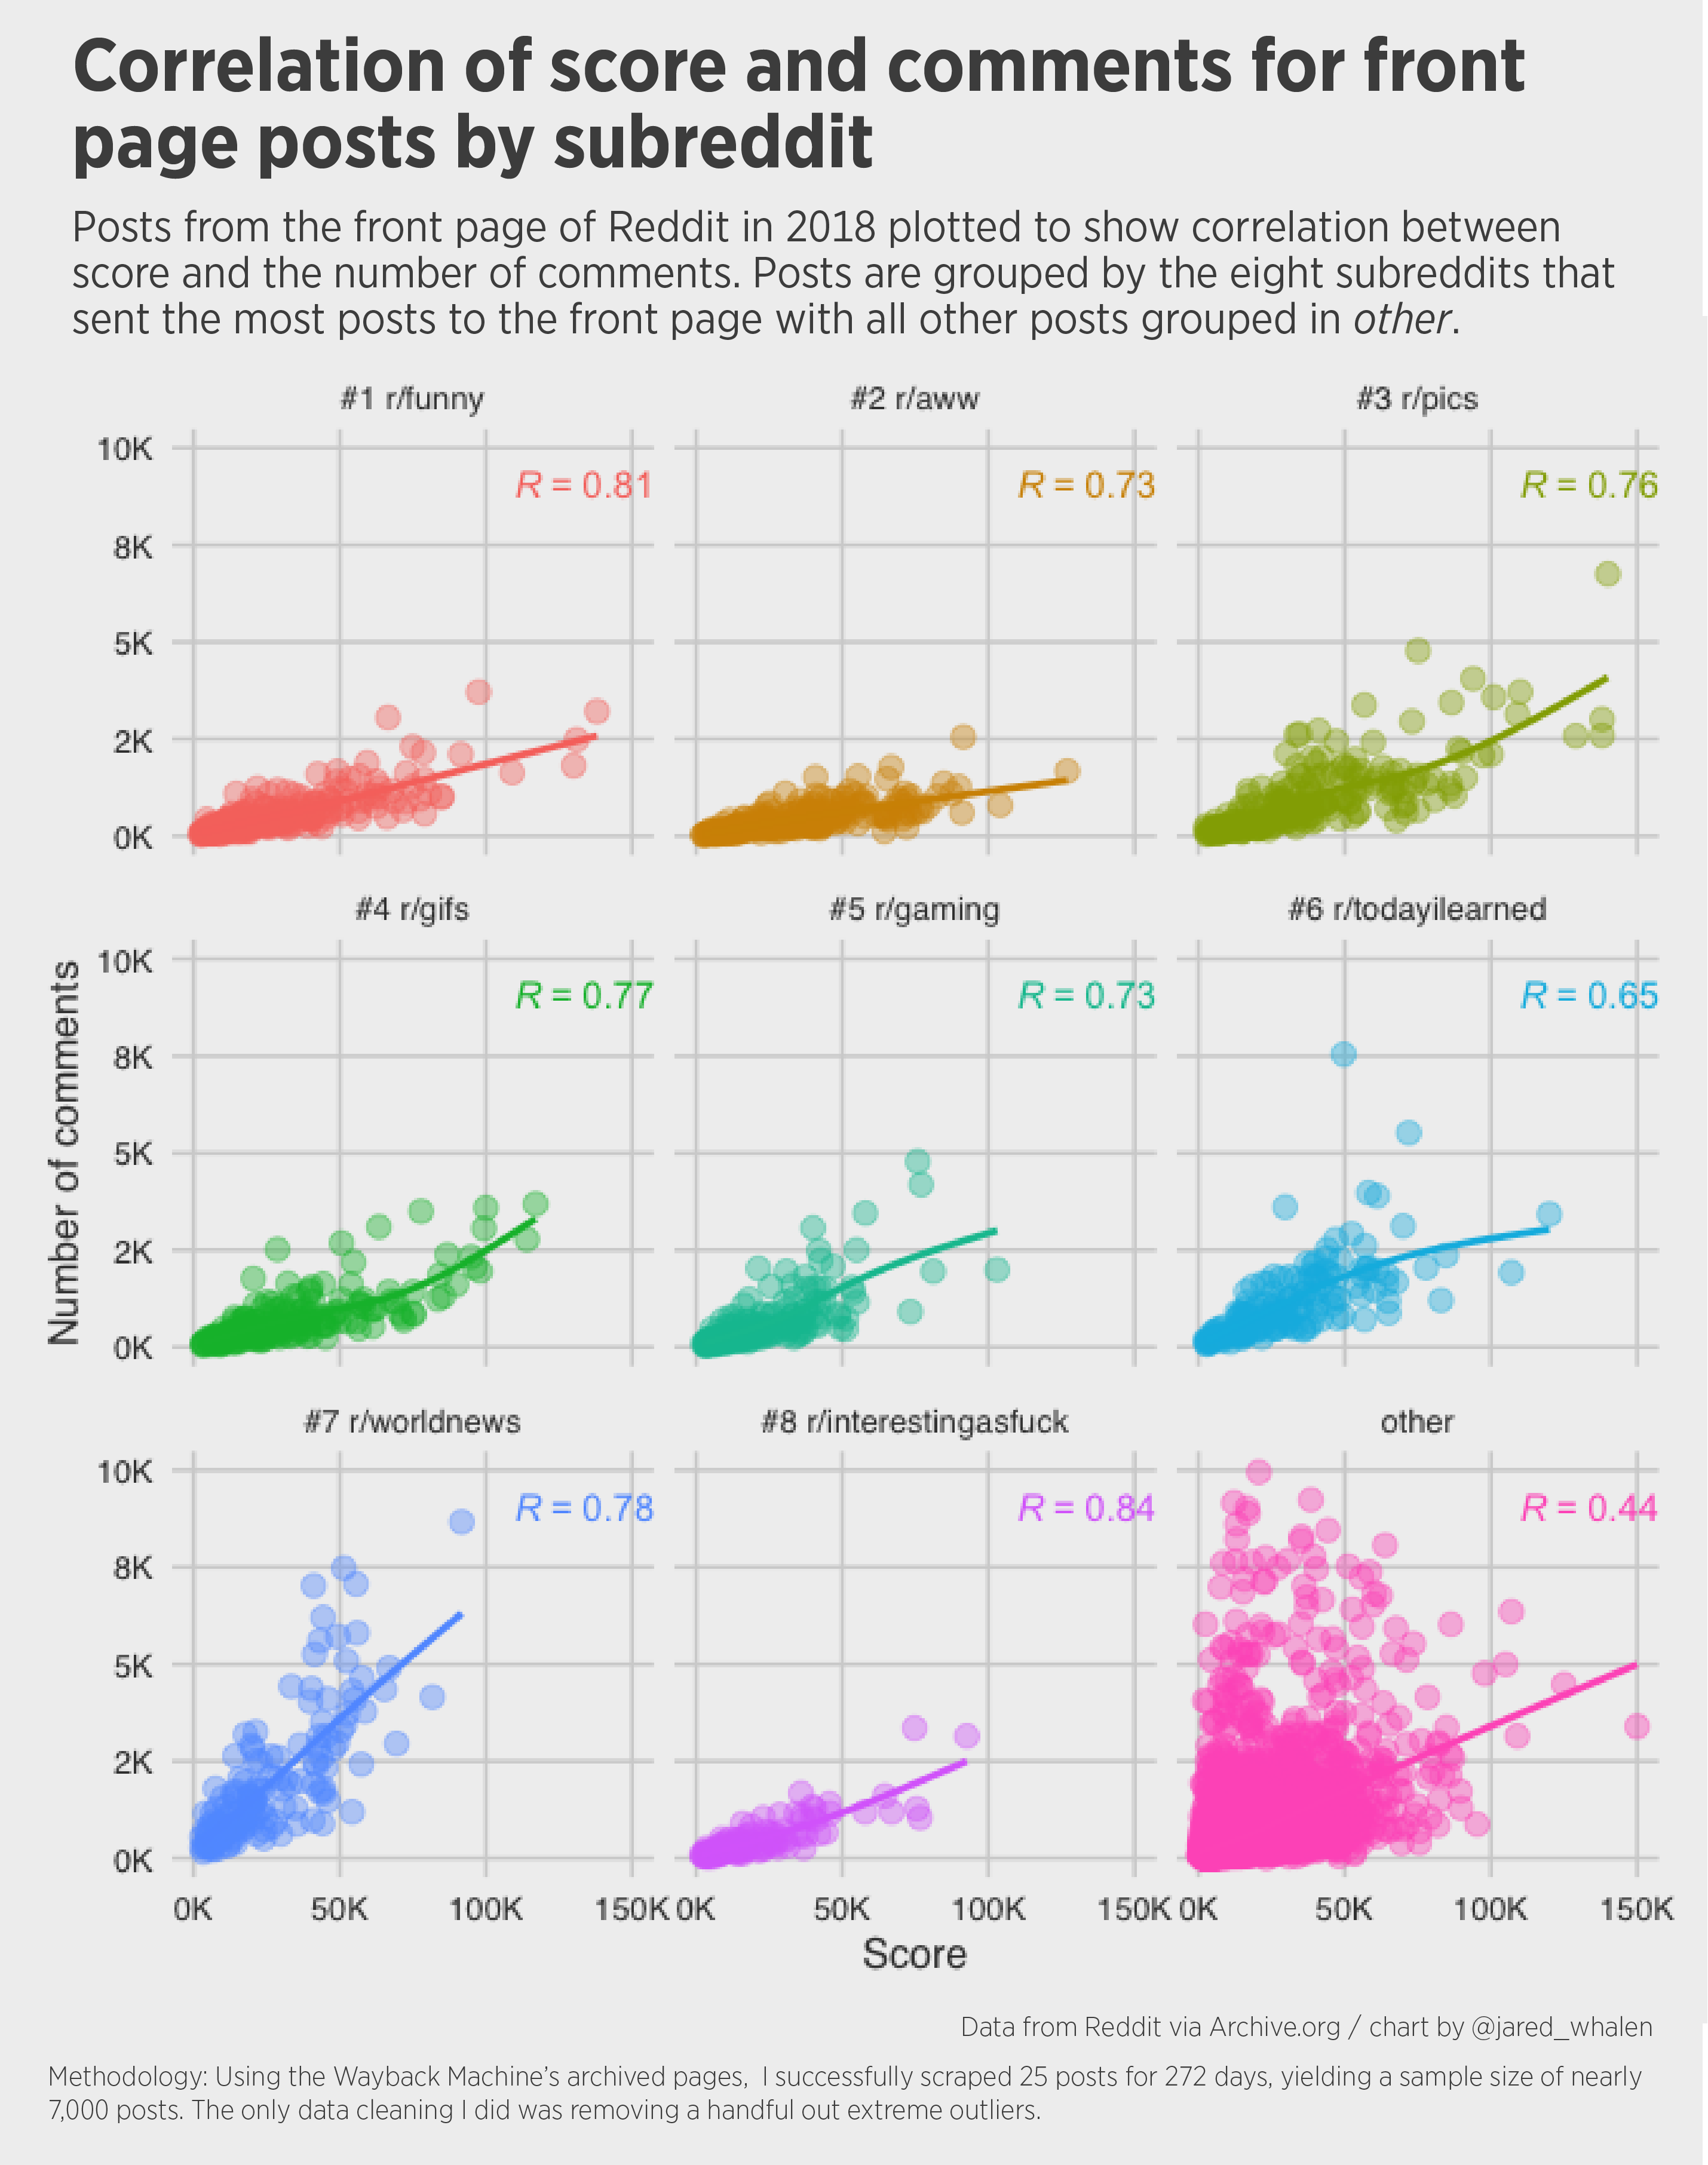 Correlation between score and comments on the front page of